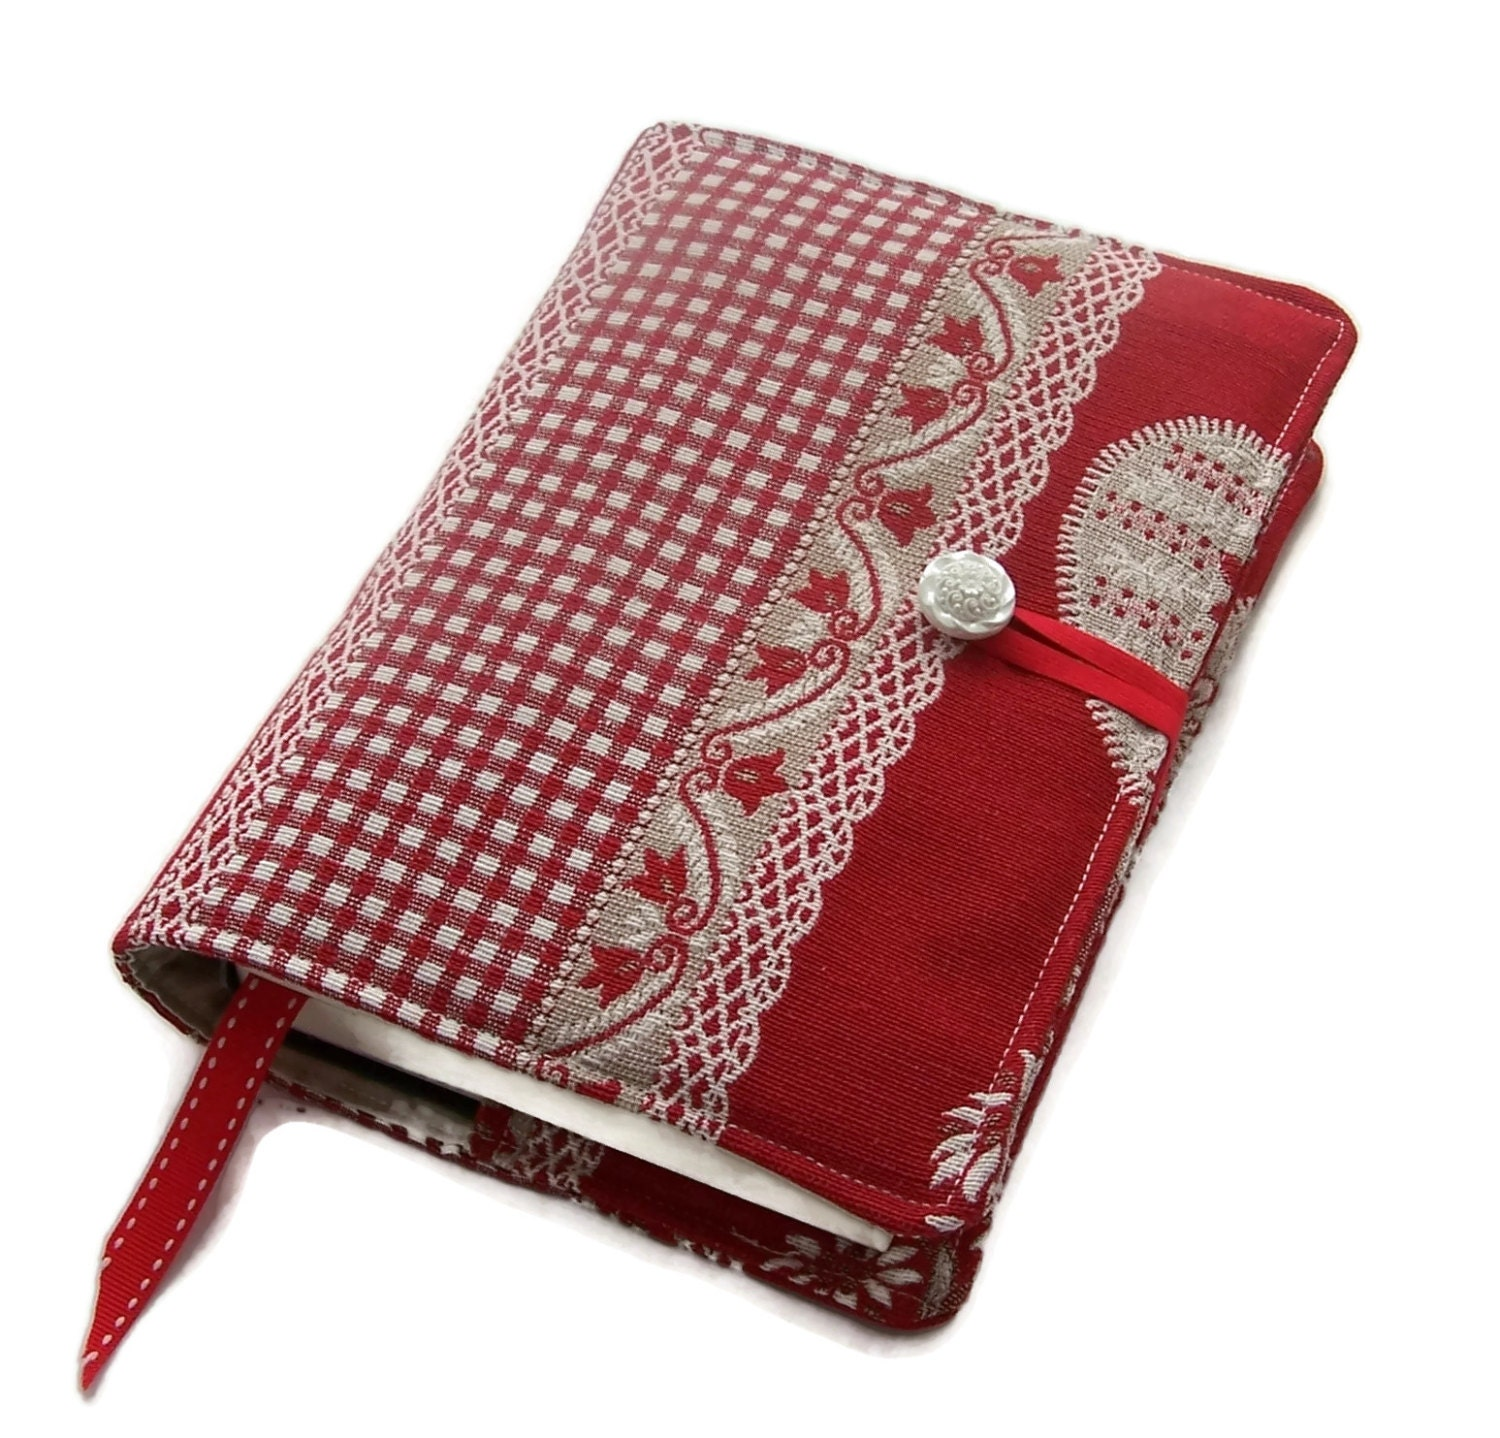 Book Cover Material : Fabric book cover journal jacket handmade bible swiss